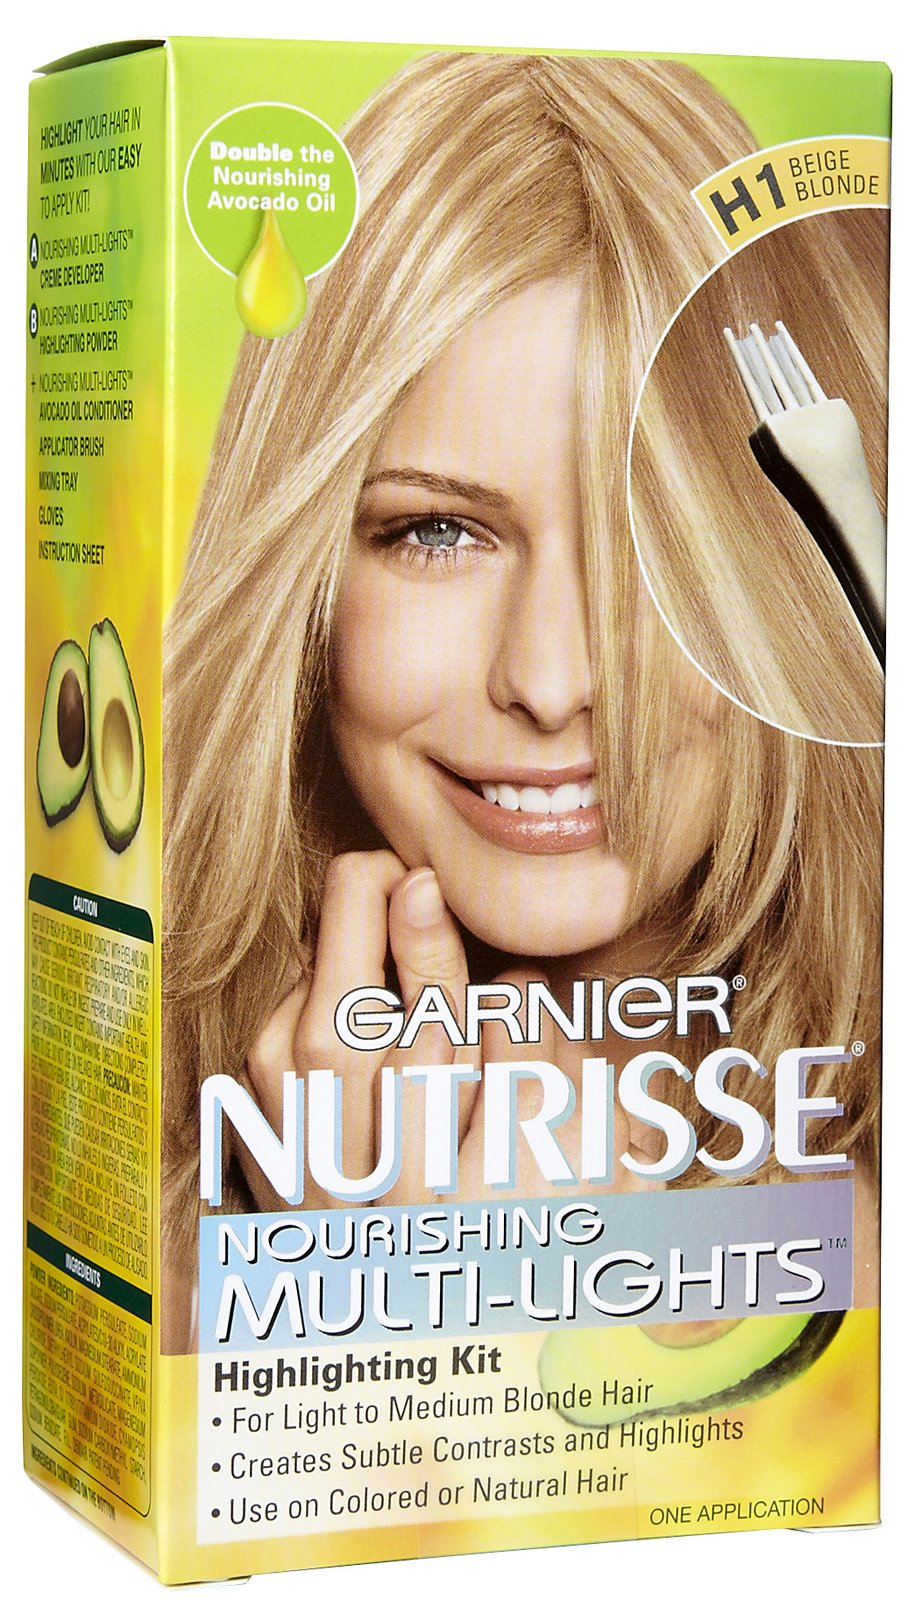 Nutrisse Multi Lights Kit Hairstyle Inspirations 2018